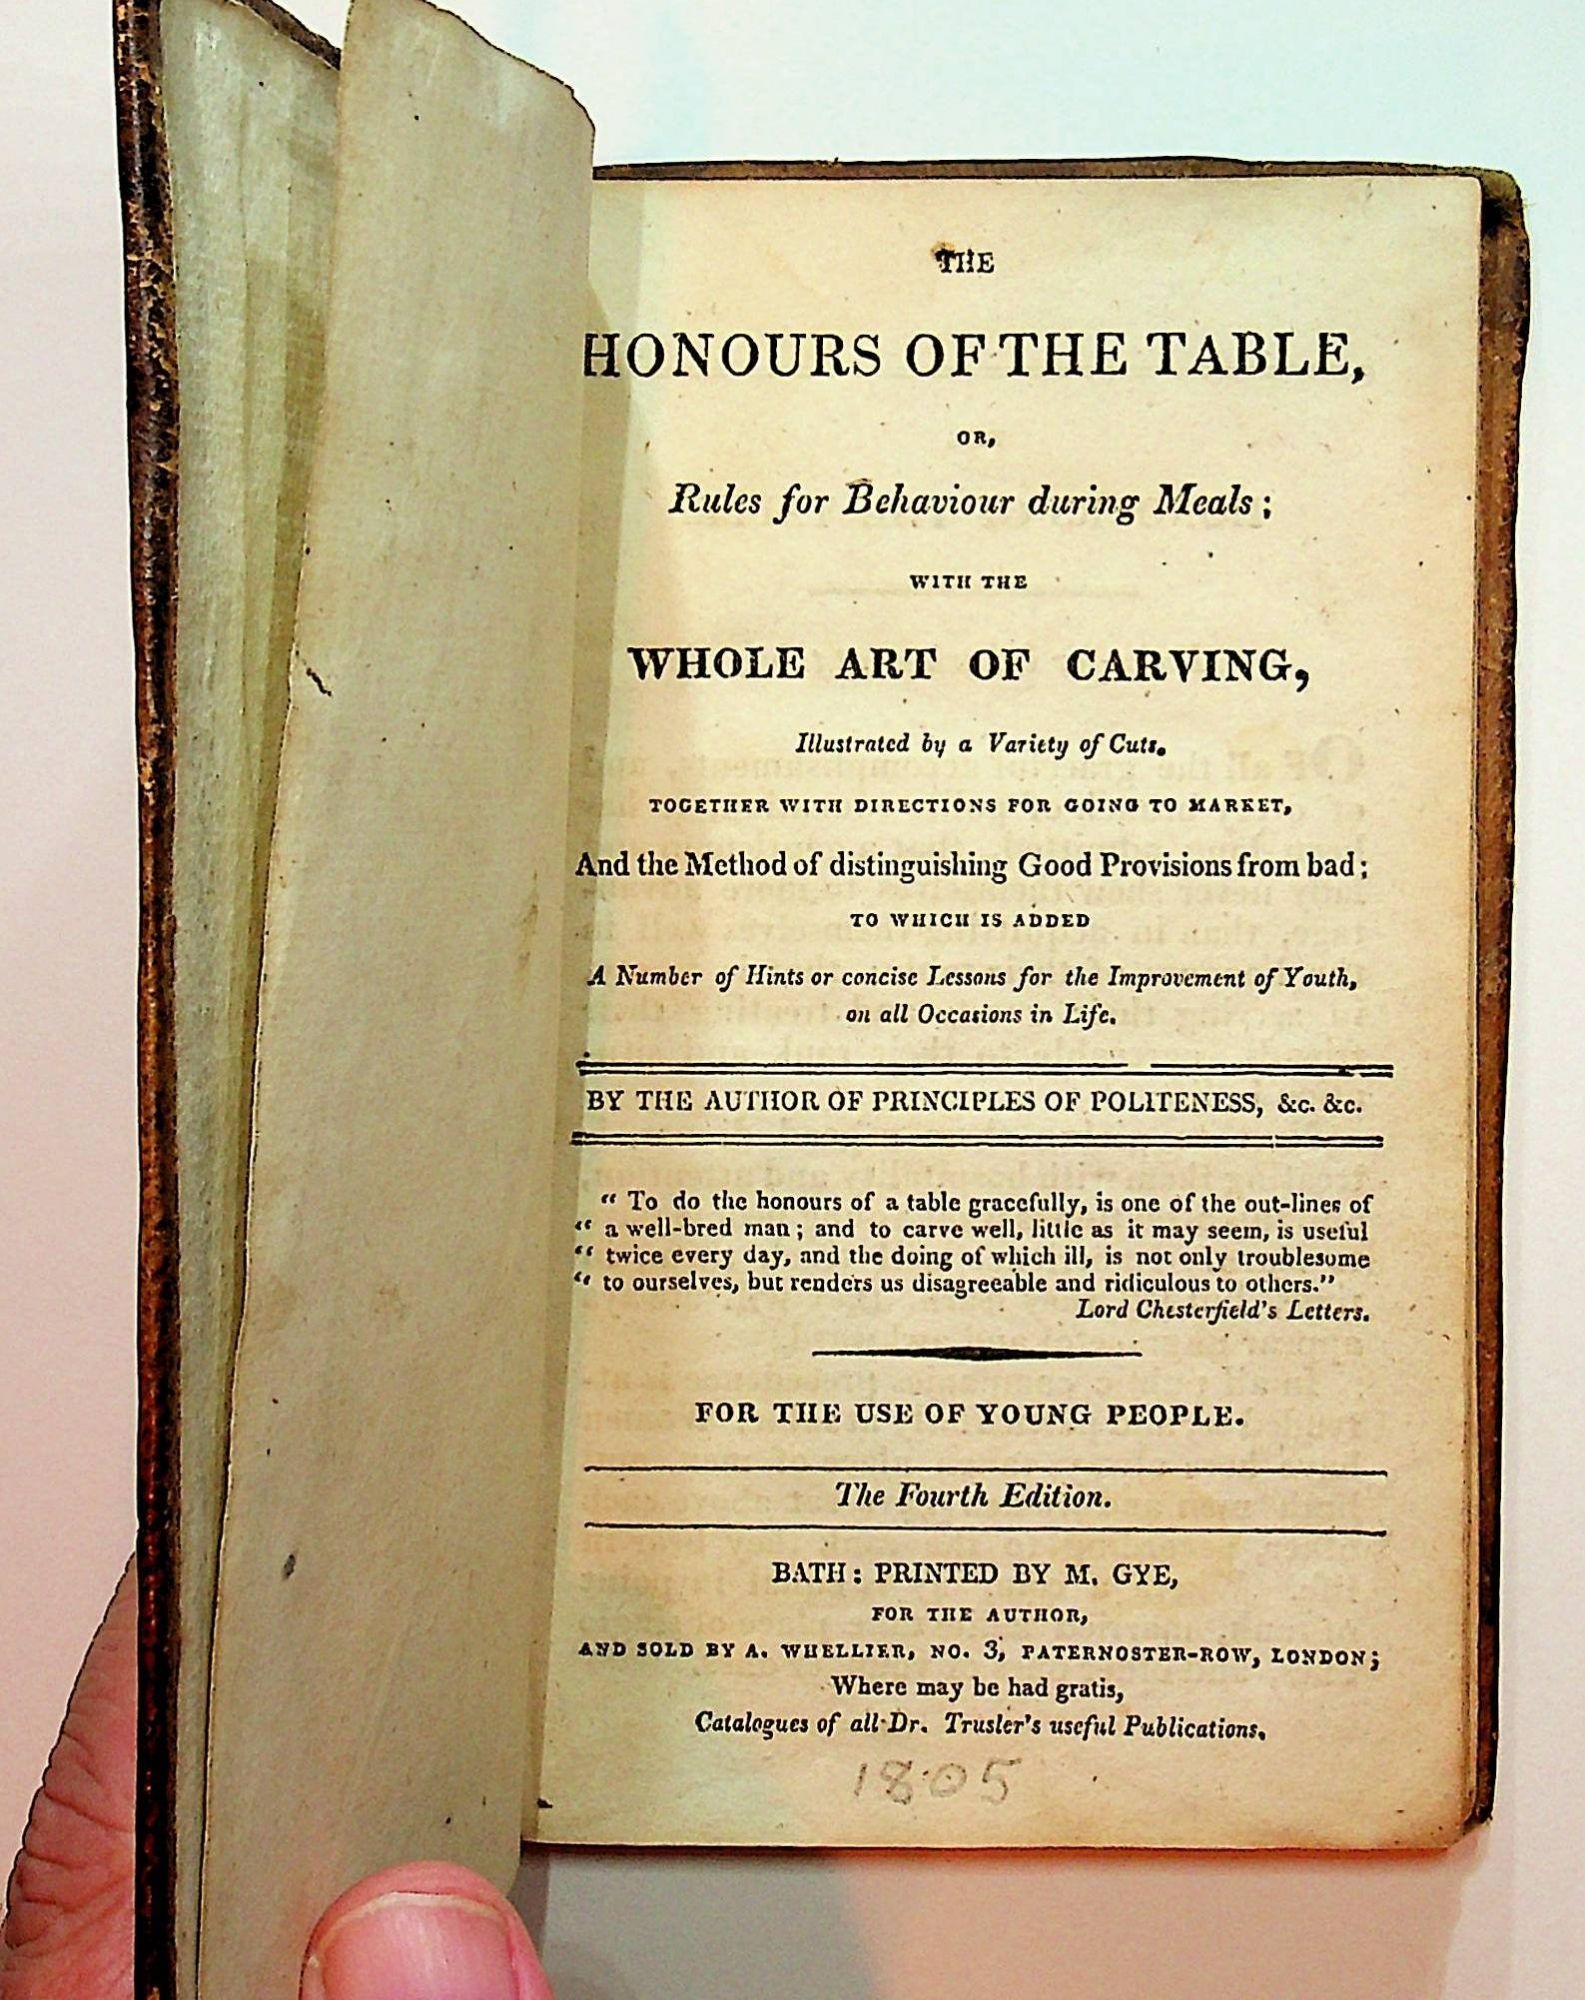 The Honours of the Table, or Rules for Behavior during Meals; with the Whole Art of Carving, illustrated by a variety of cts, together with direections for going to market...For the use of Young People. The Fourth Edition. By the author of Principles of Politeness, Rev. Dr. John Trusler.